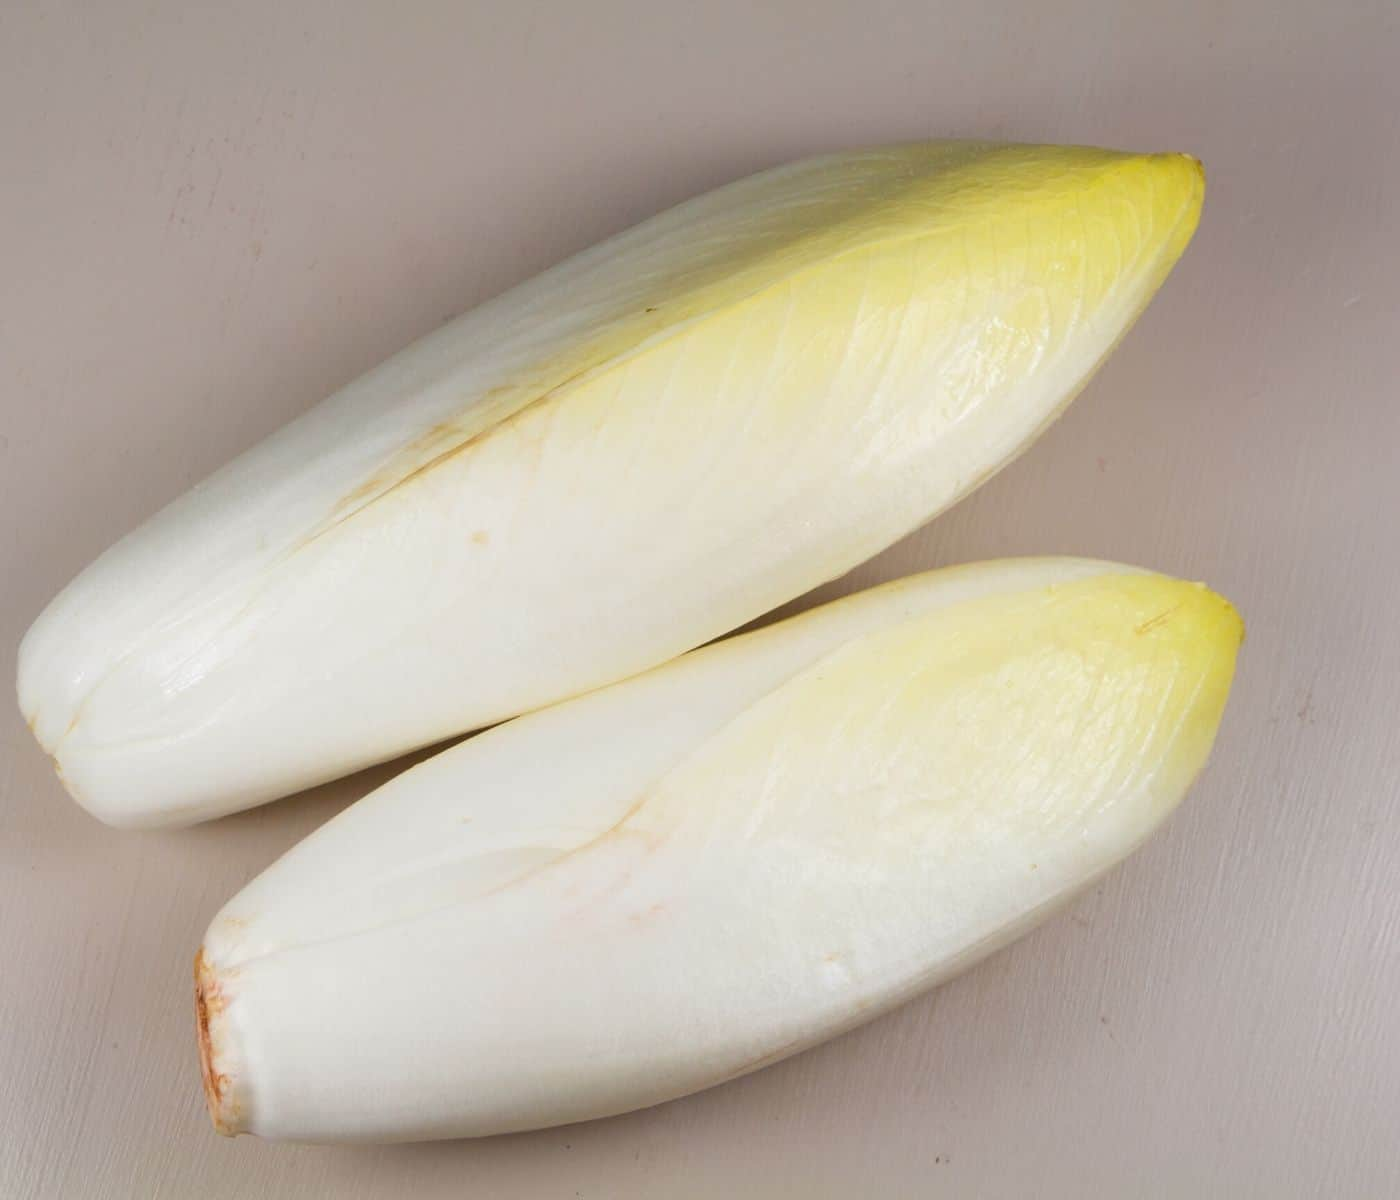 two endive heads.